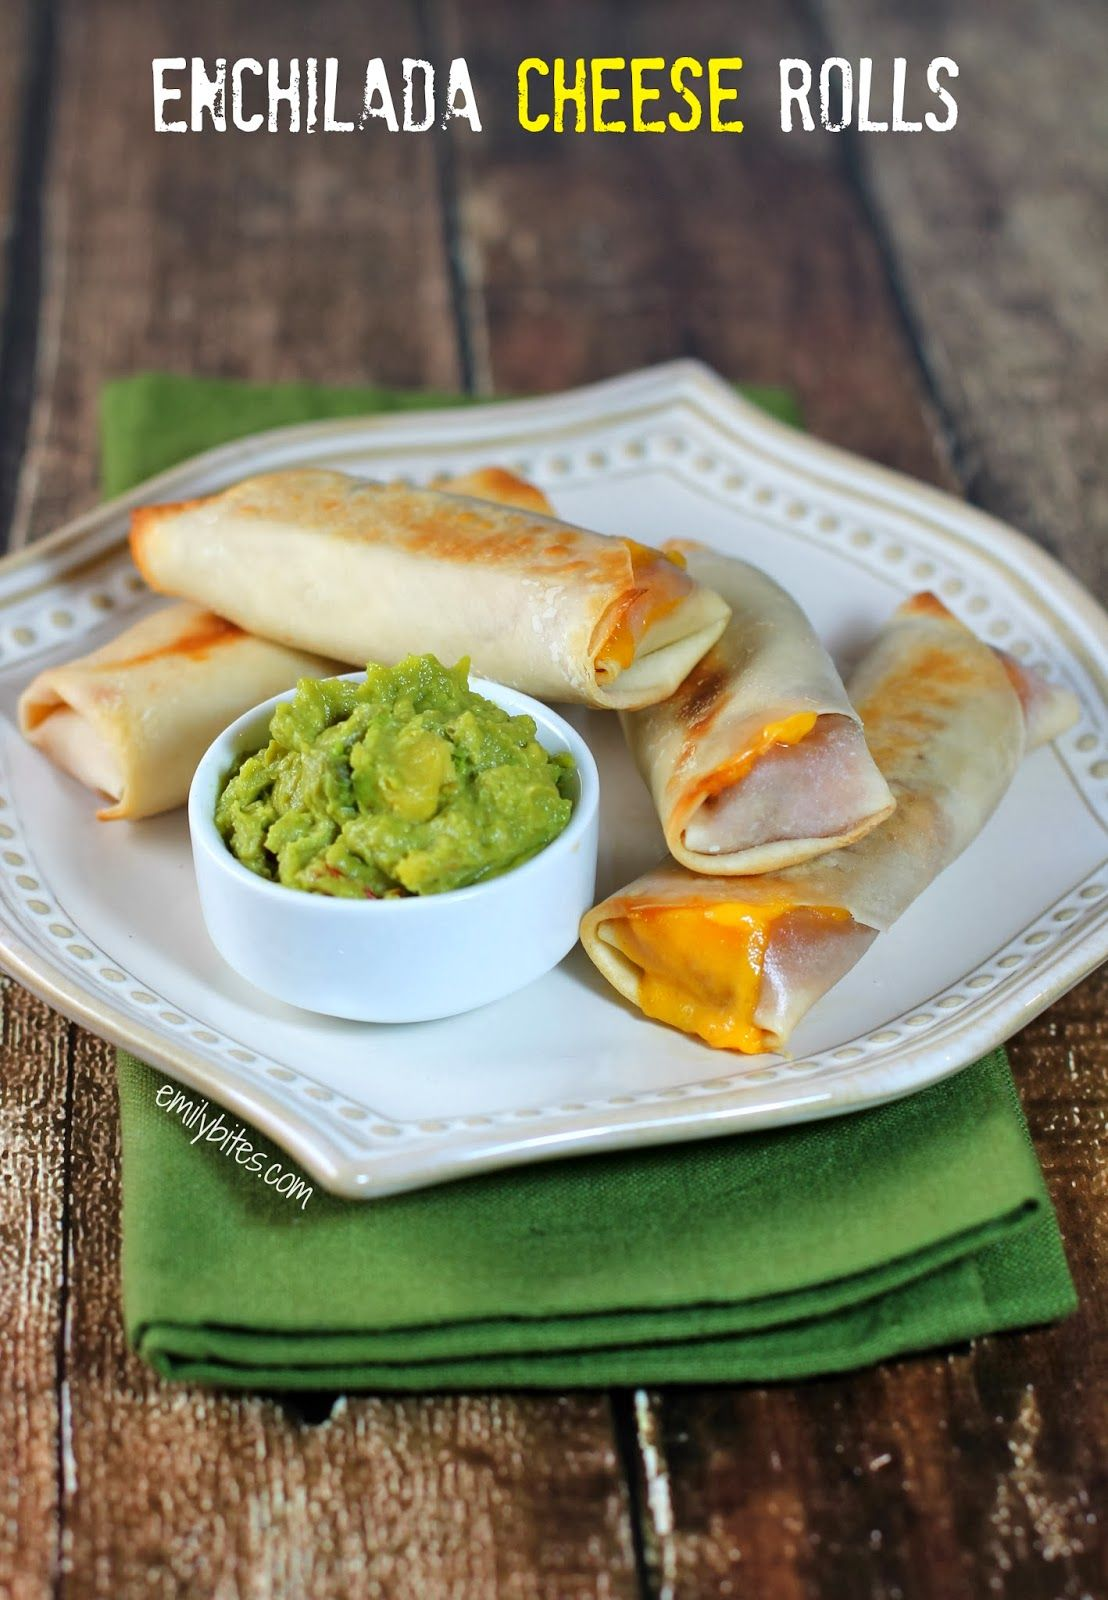 Emily Bites - Weight Watchers Friendly Recipes: Enchilada Cheese Rolls